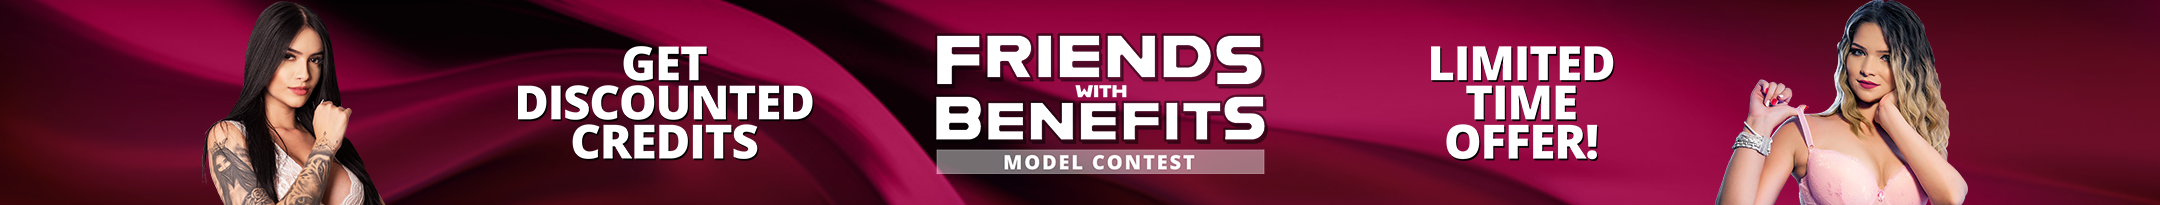 Friends With Benefits Promo